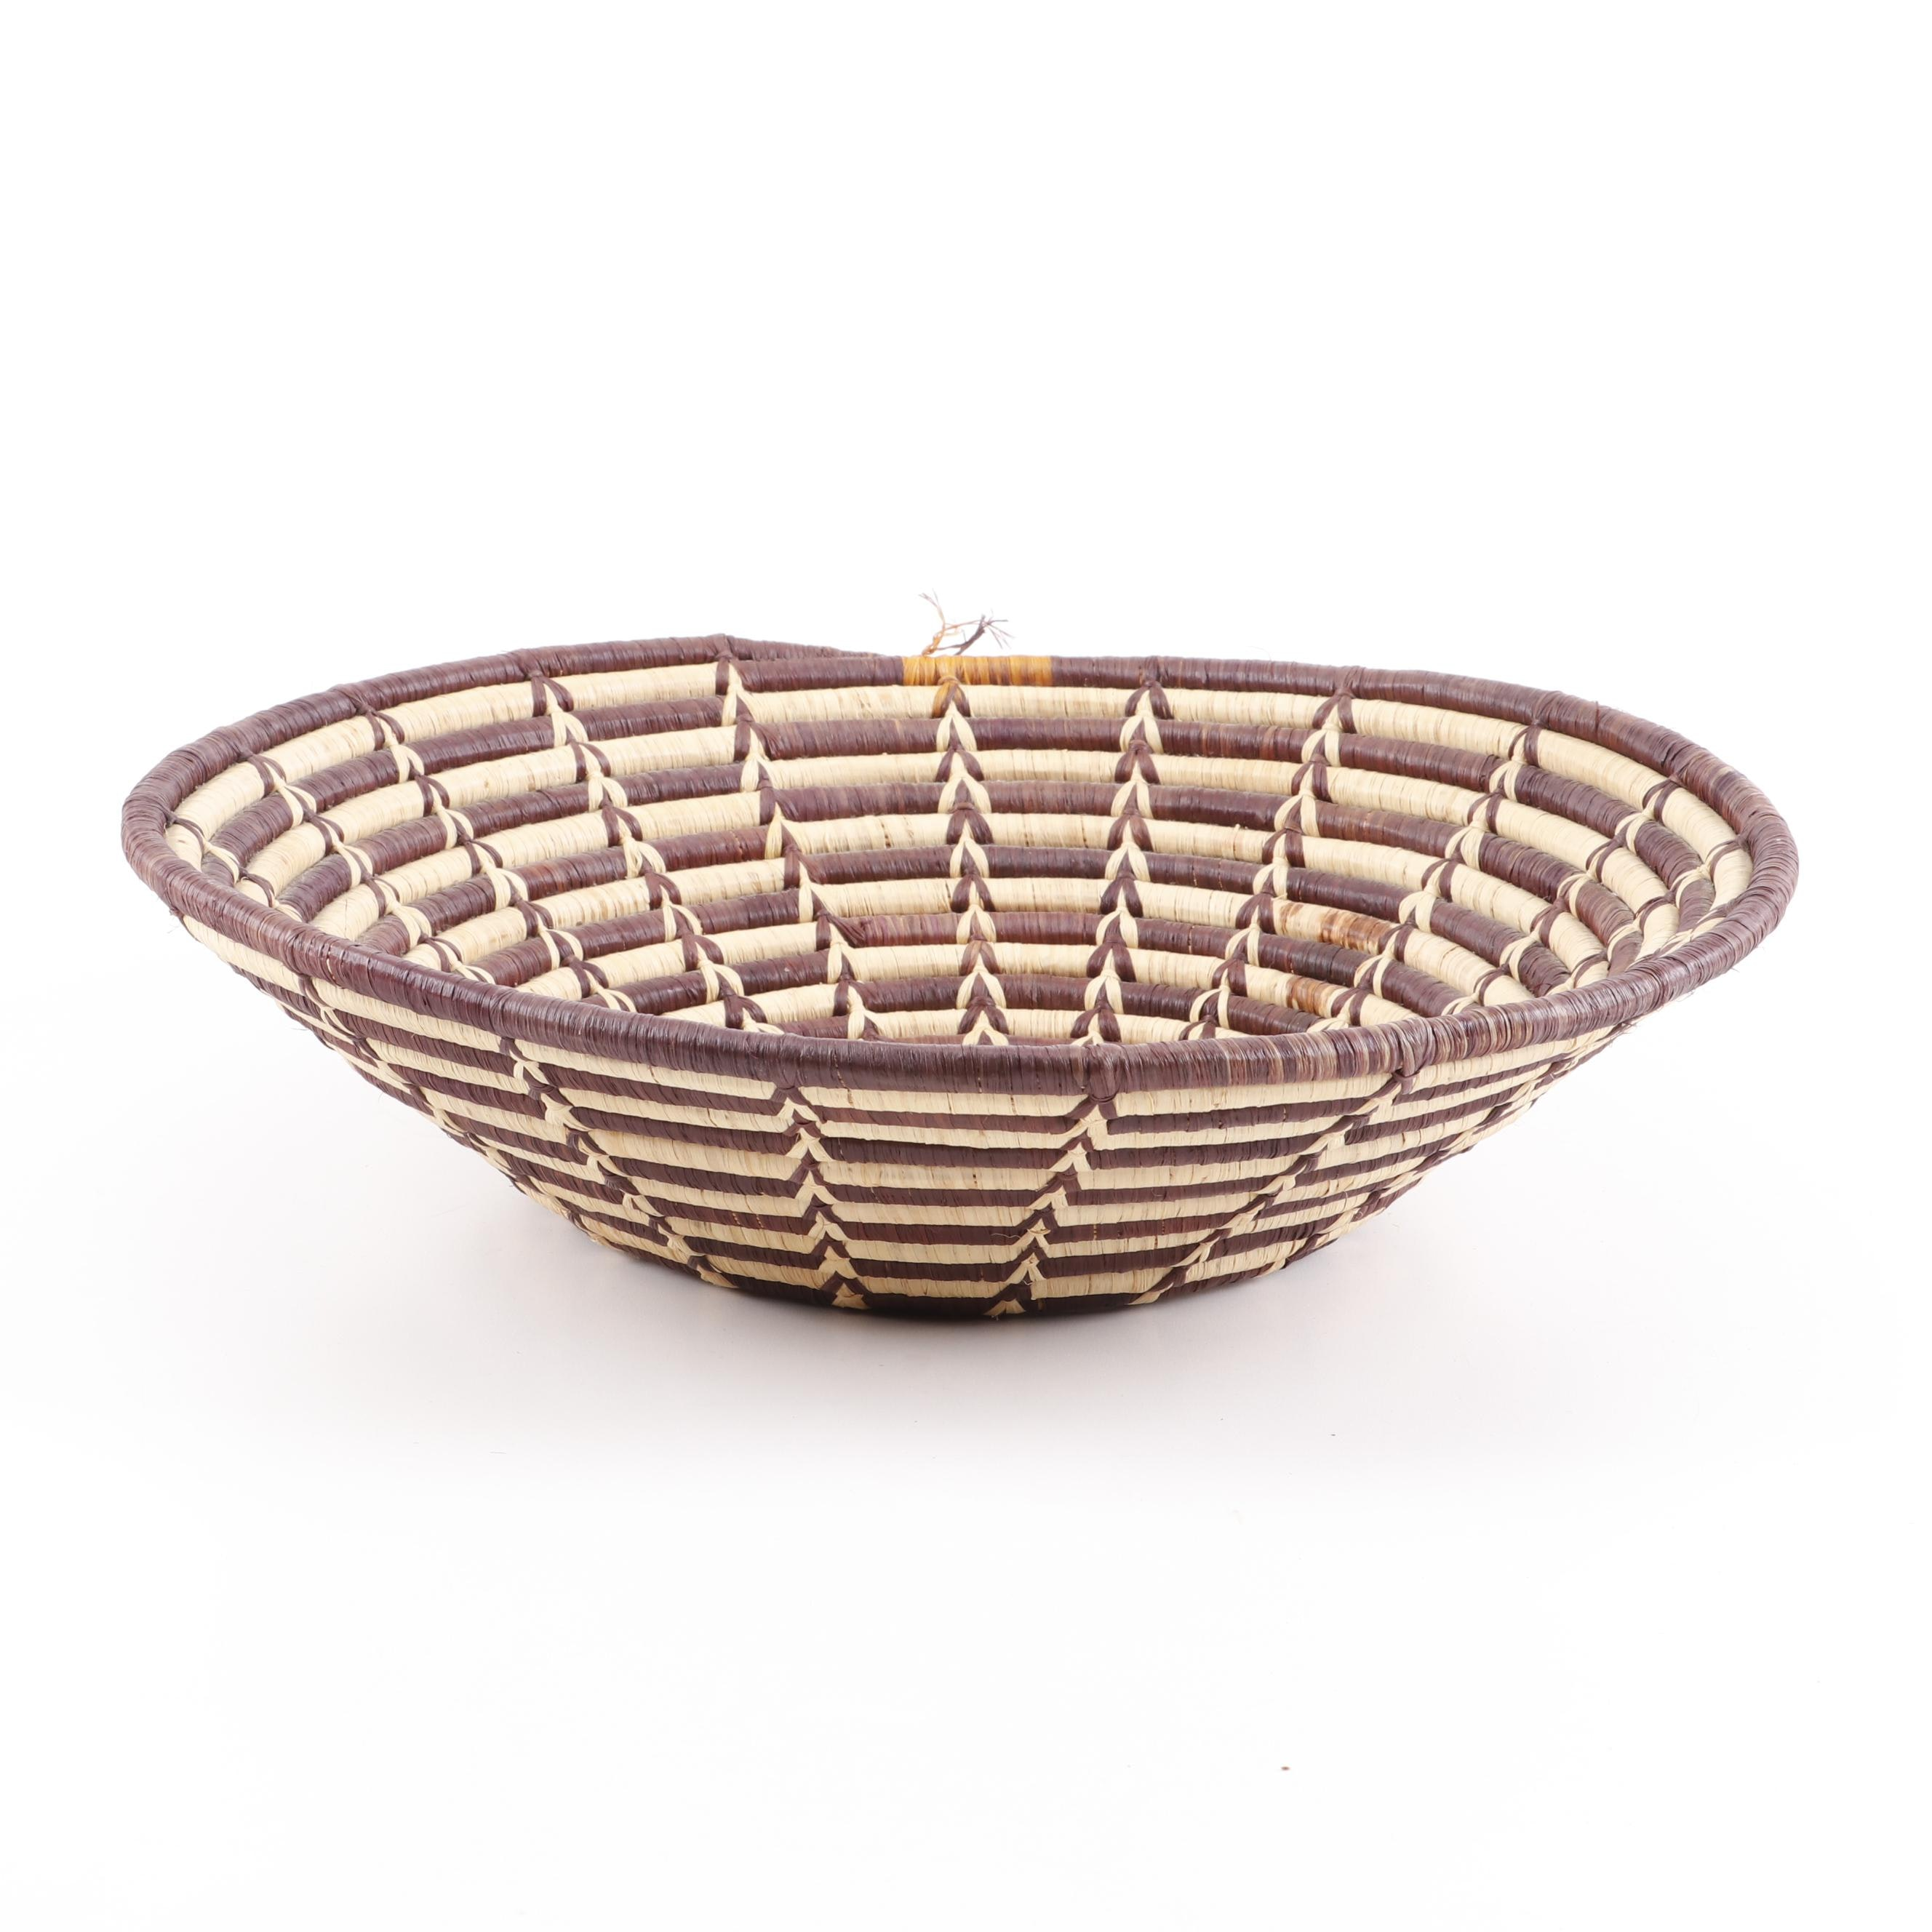 African Style Woven Coil Basket, Mid to Late 20th Century